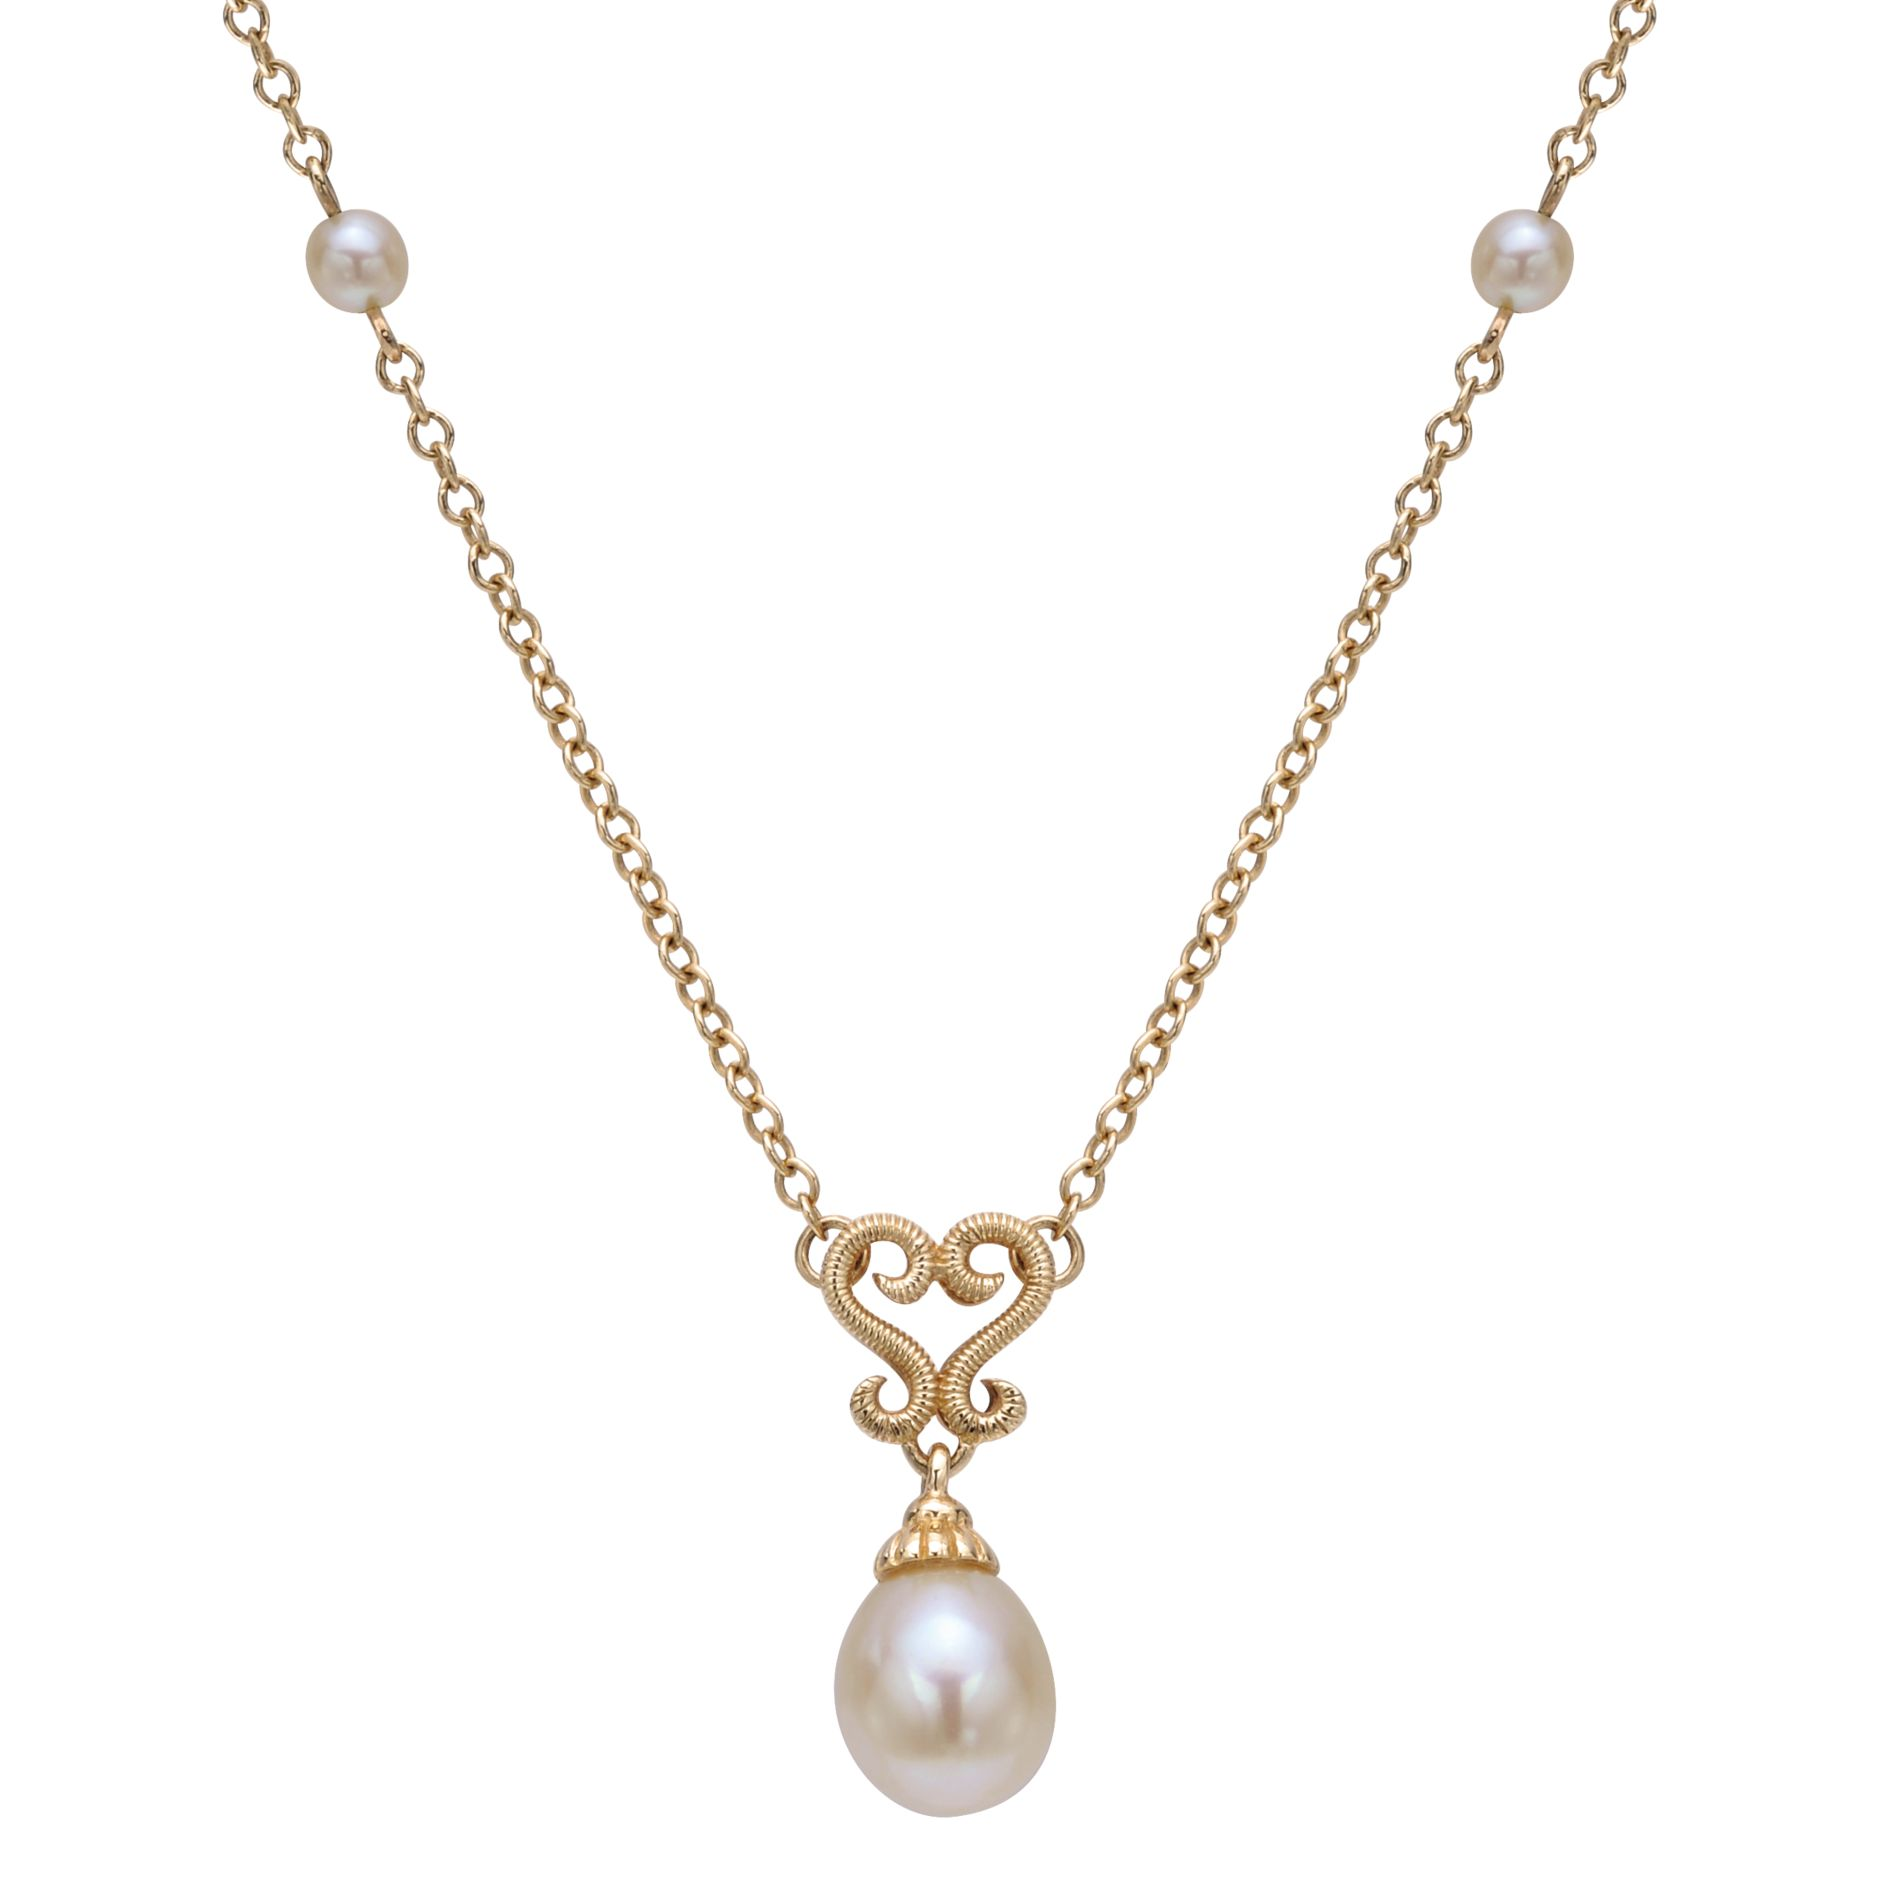 Necklaces - ELLOW GOLD FASHION CULTURED PEARL NECKLACE